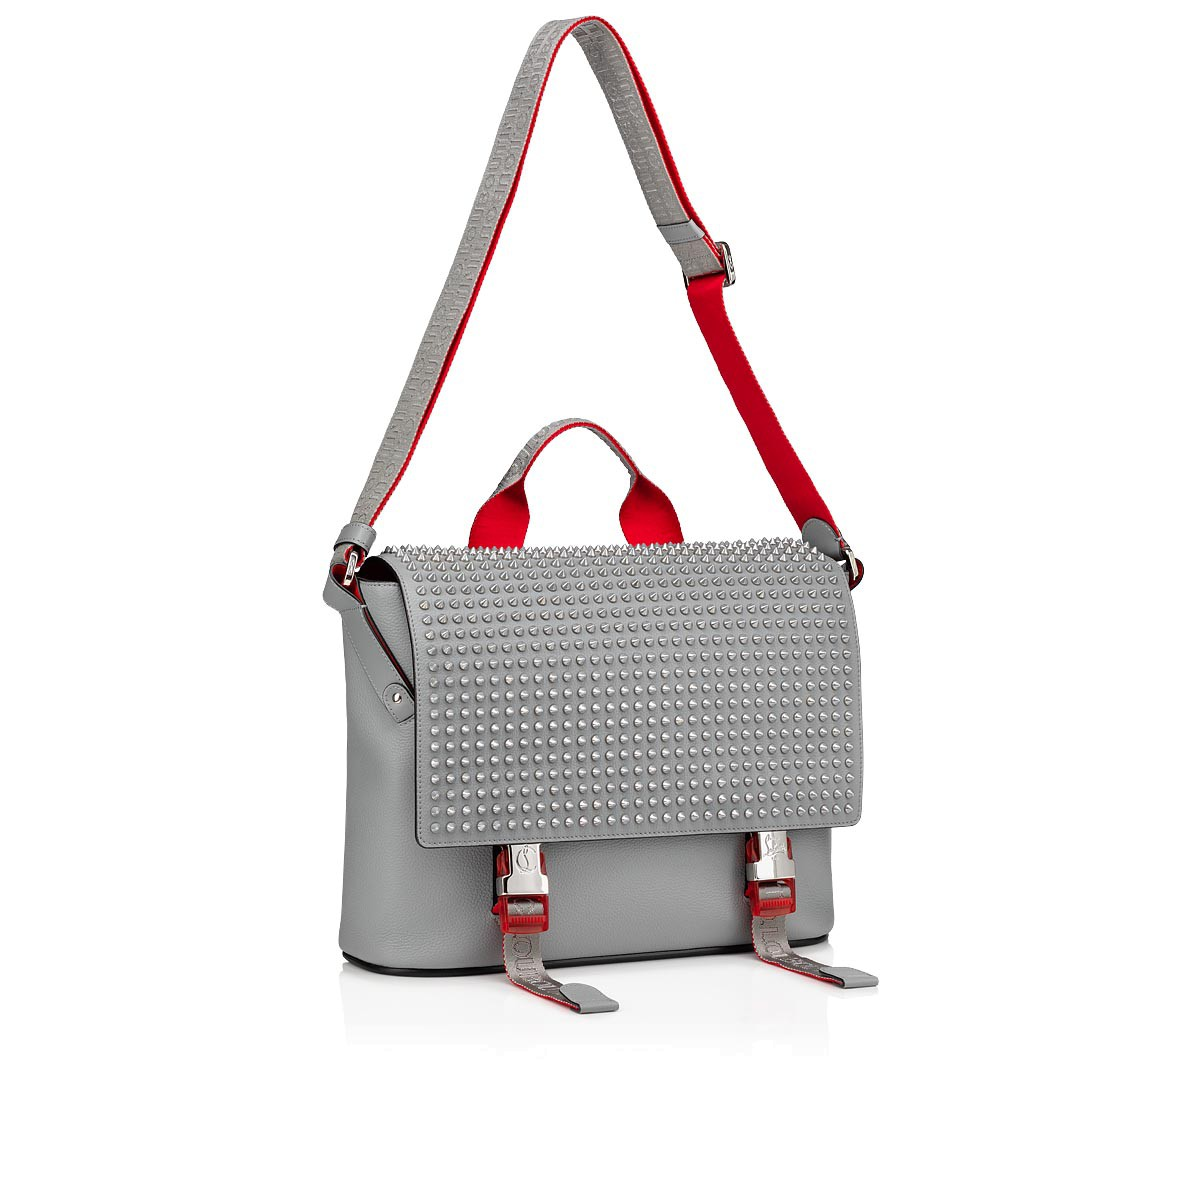 Men Bag - Loubiclic Messenger - Christian Louboutin